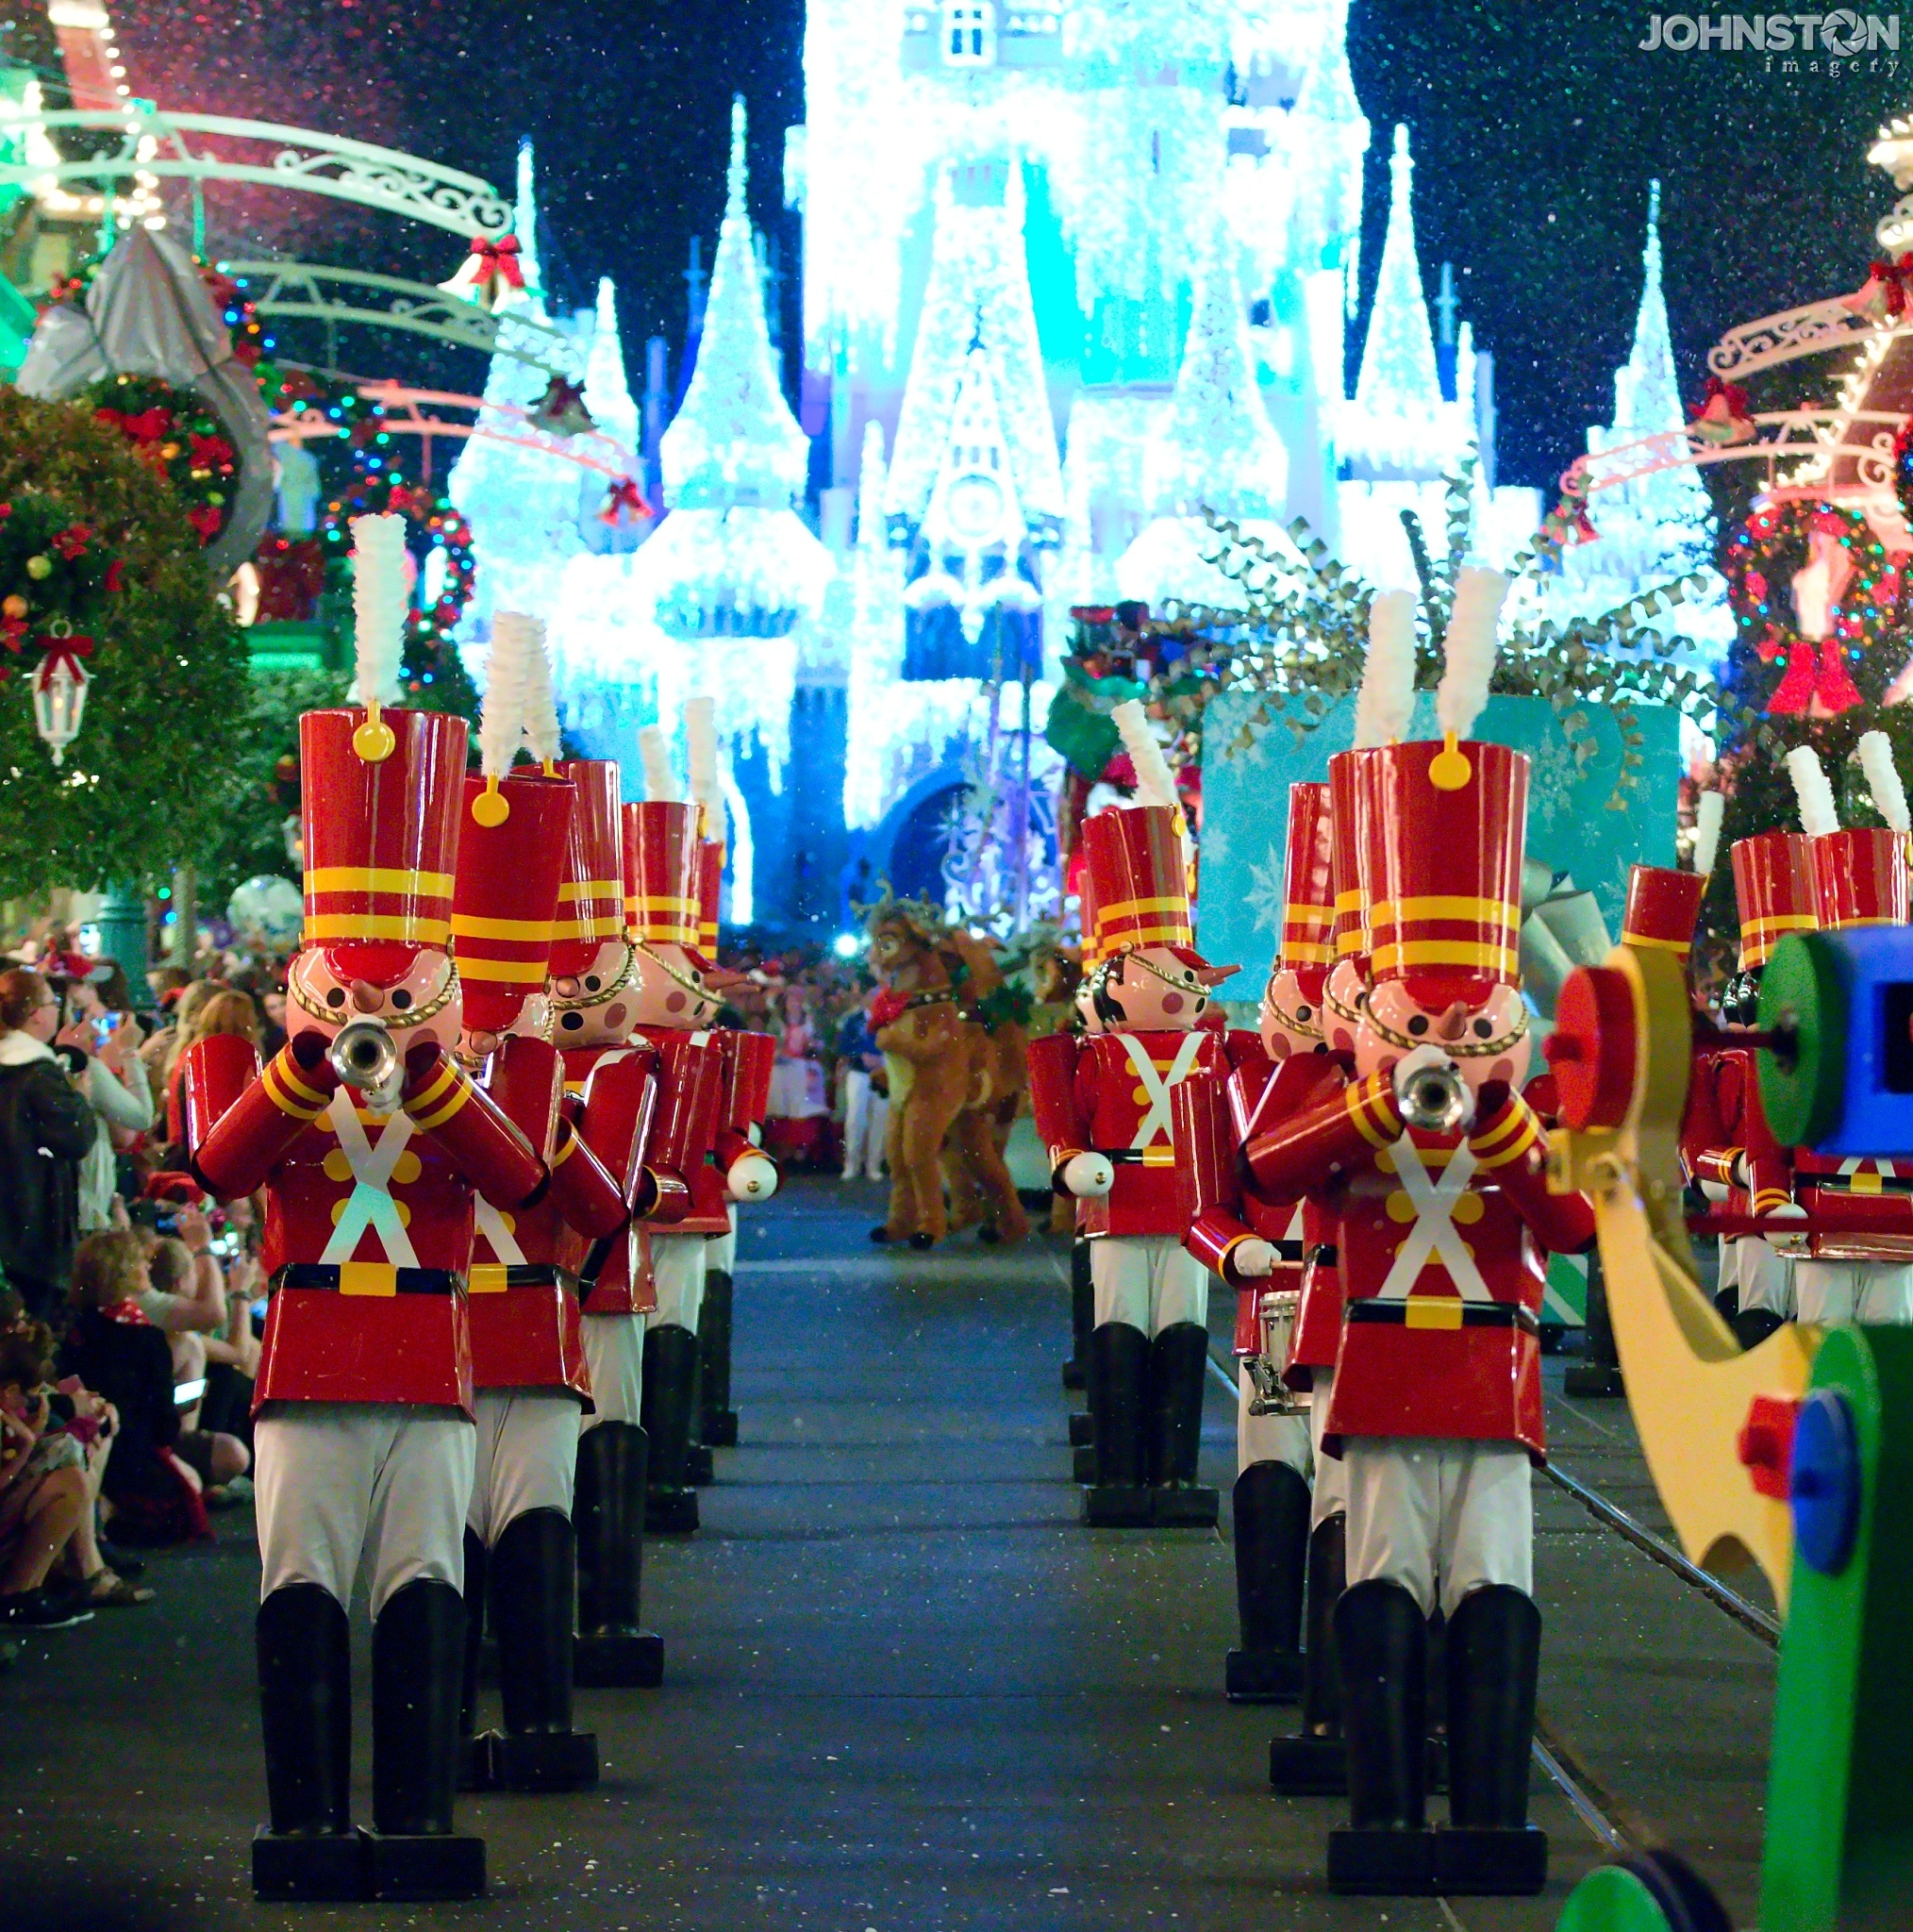 Toy Soldiers in Magic Kingdom's night time Christmas Parade by Mark Johnston